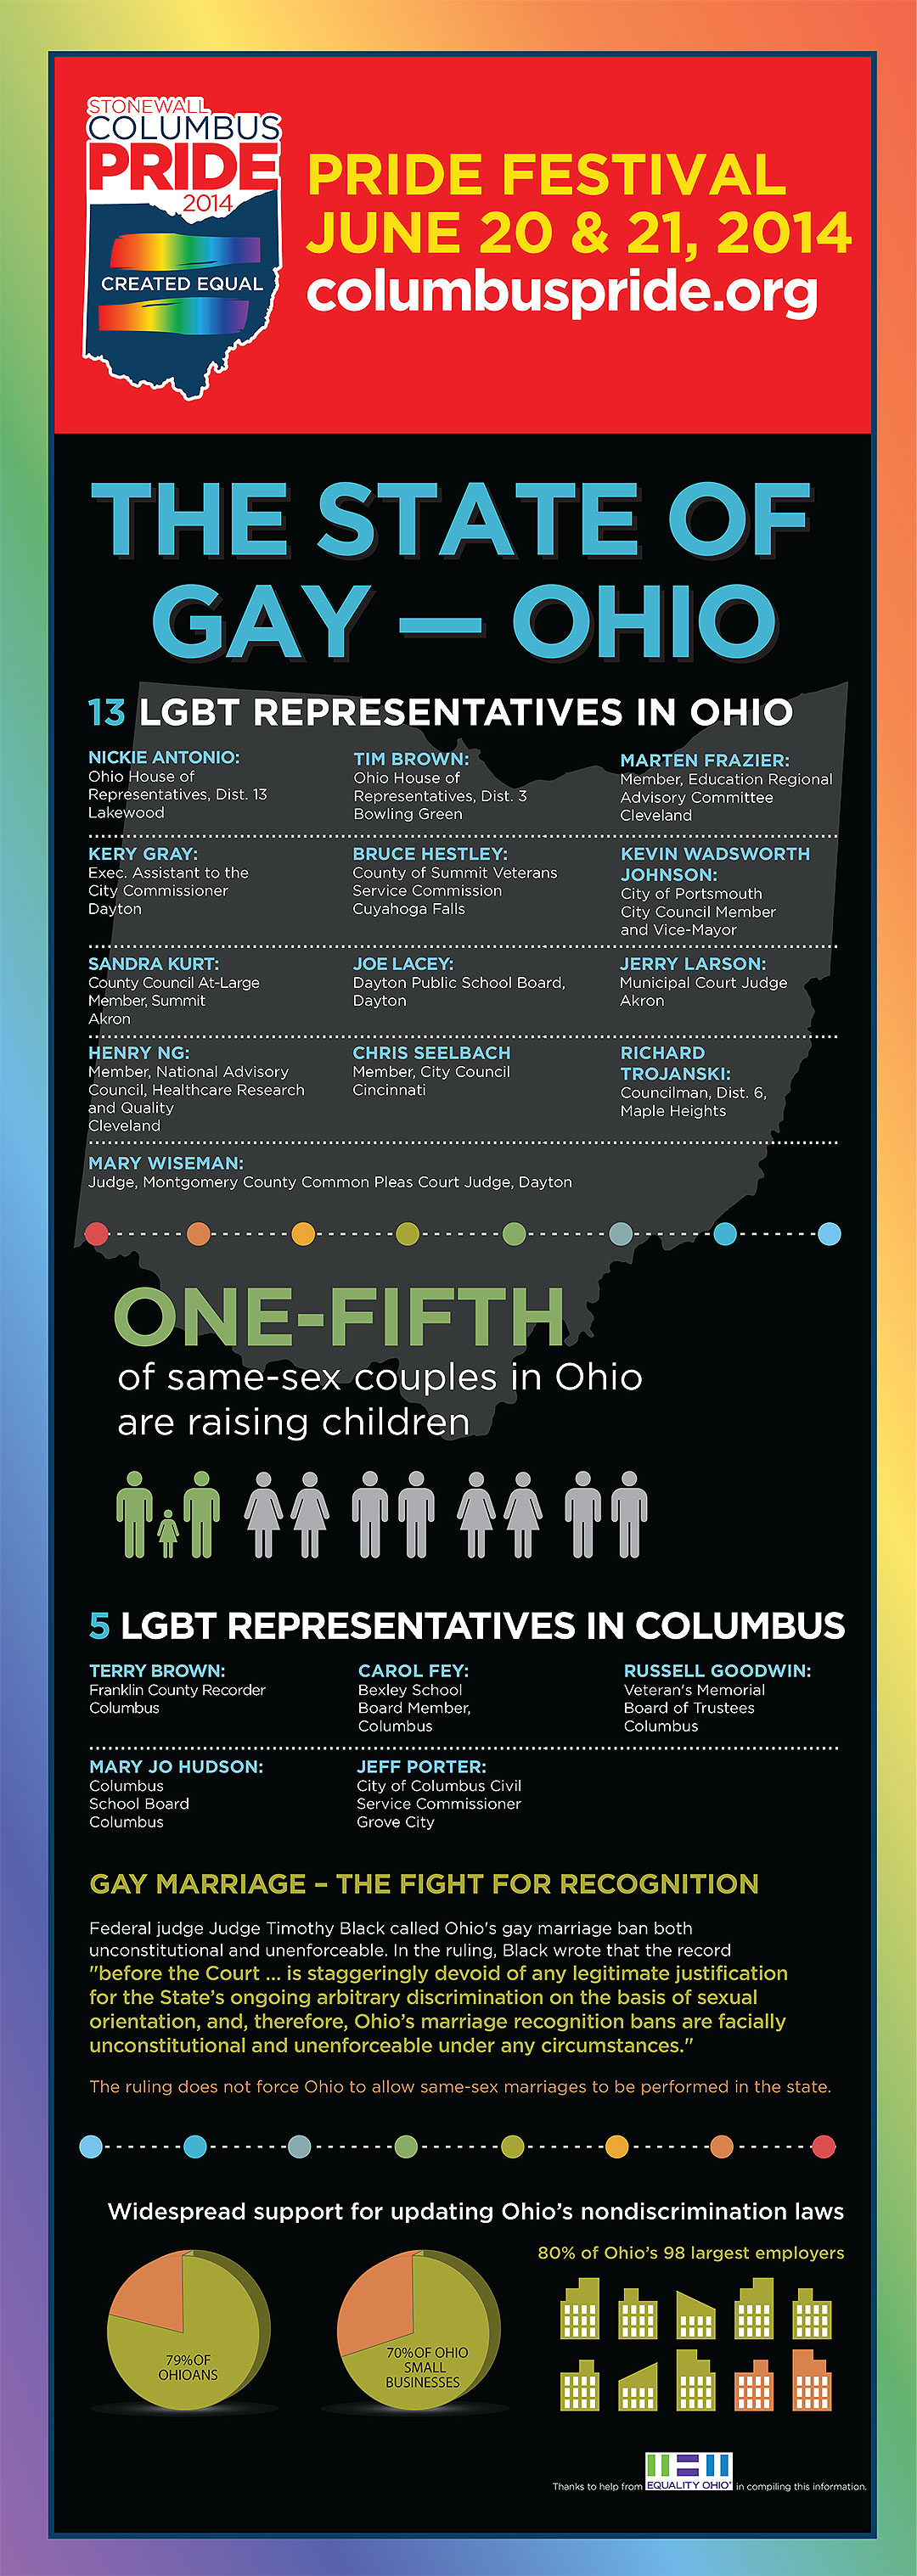 Stonewall Columbus Pride 2014: The State of Gay Ohio Infographic